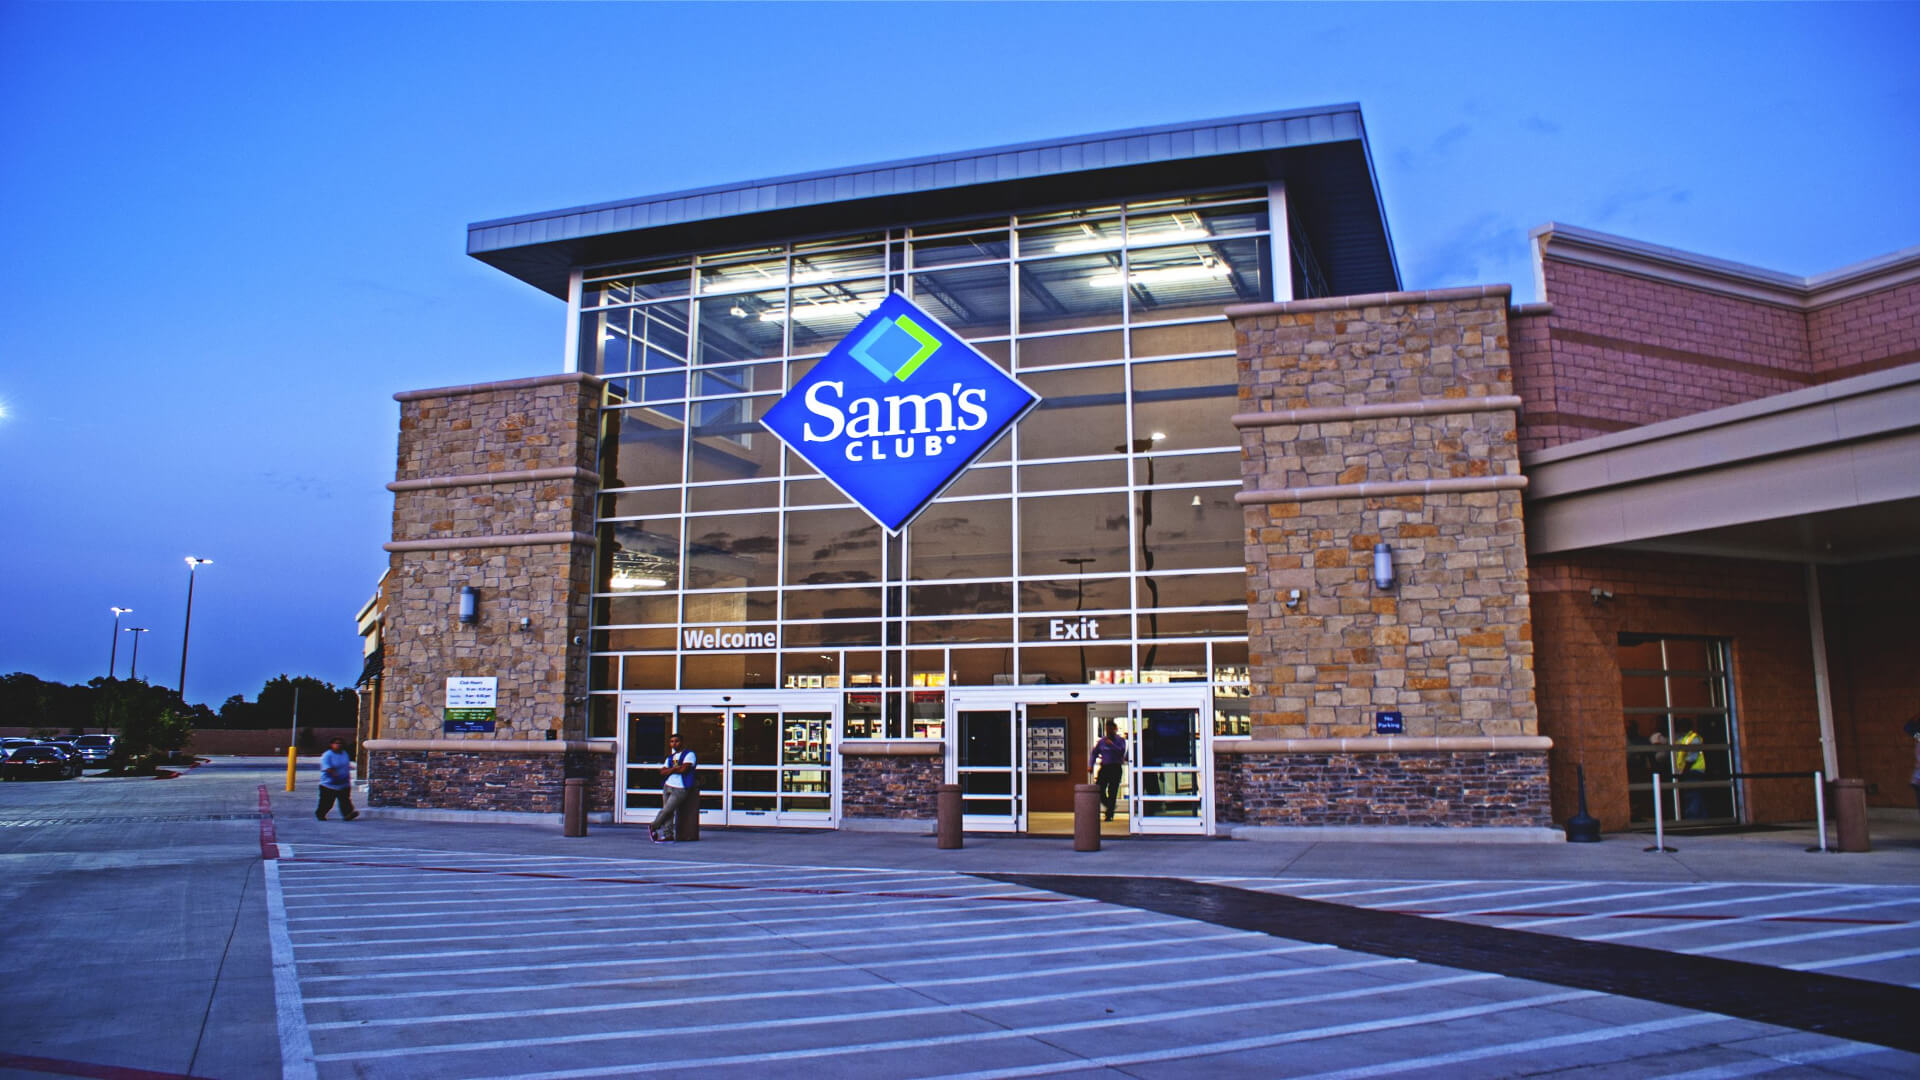 Sam's Club | Facilities Maintenance | Dallas Fort Worth Texas